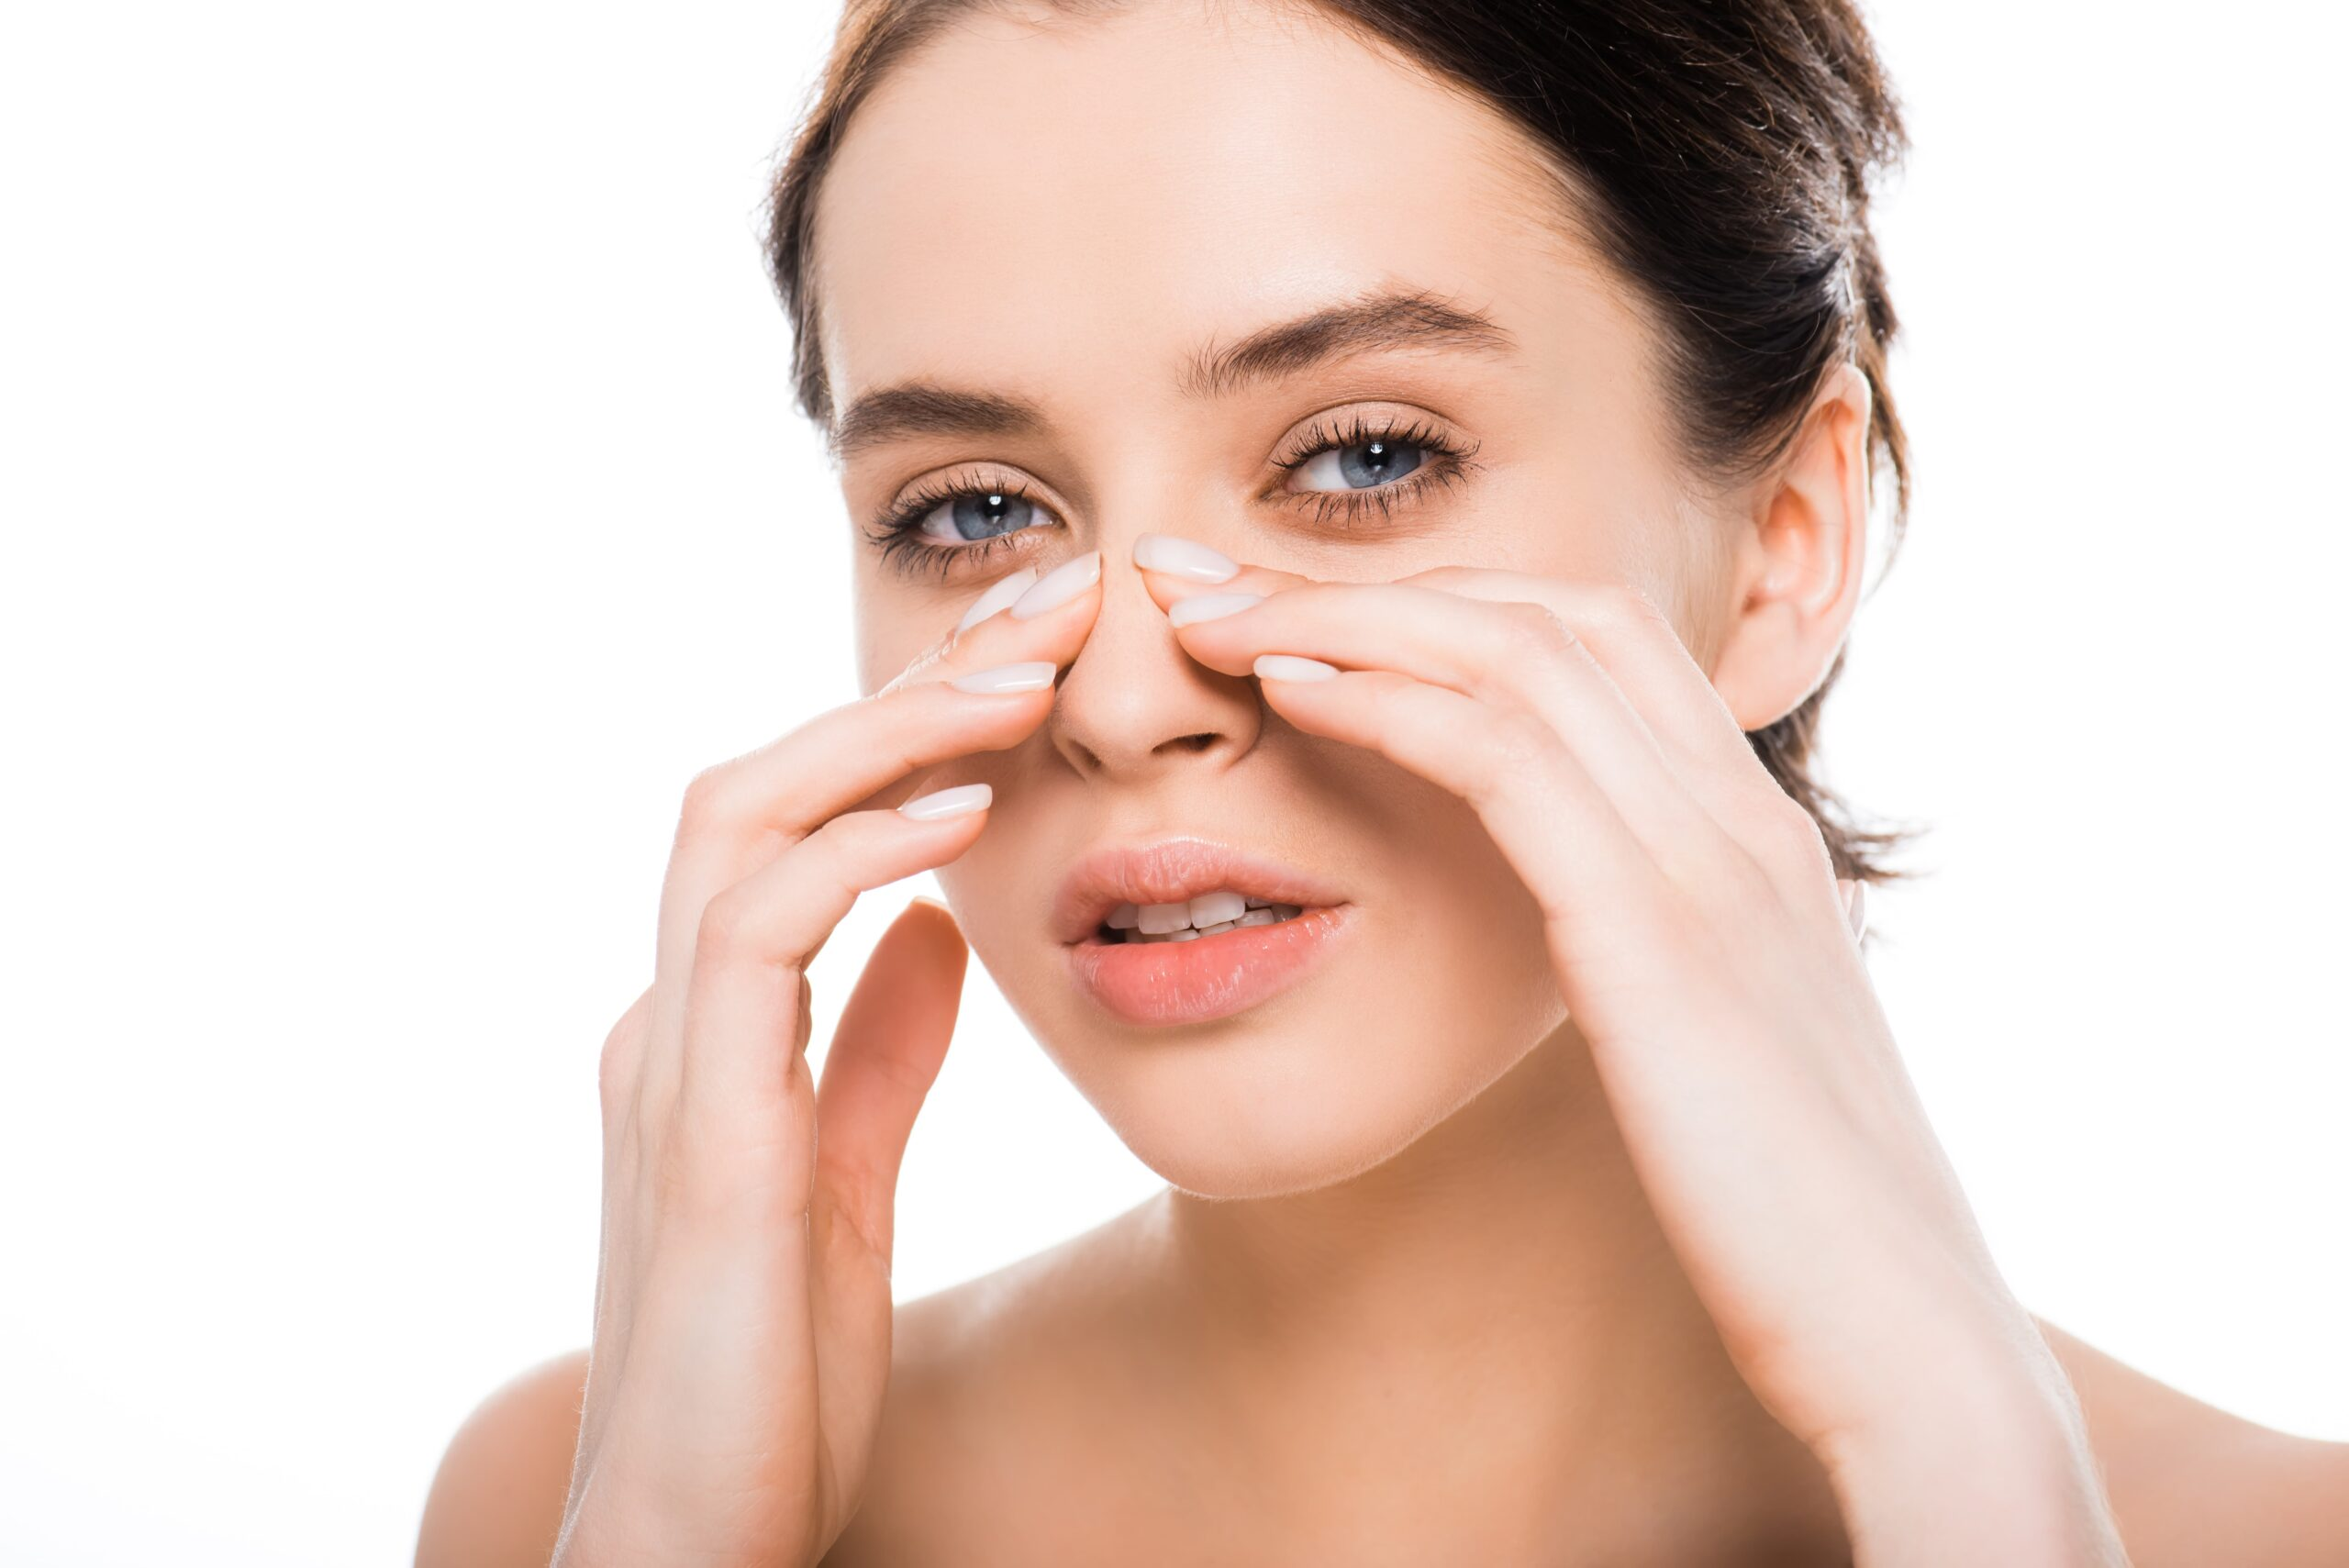 Improve Your Appearance with a Rhinoplasty Procedure